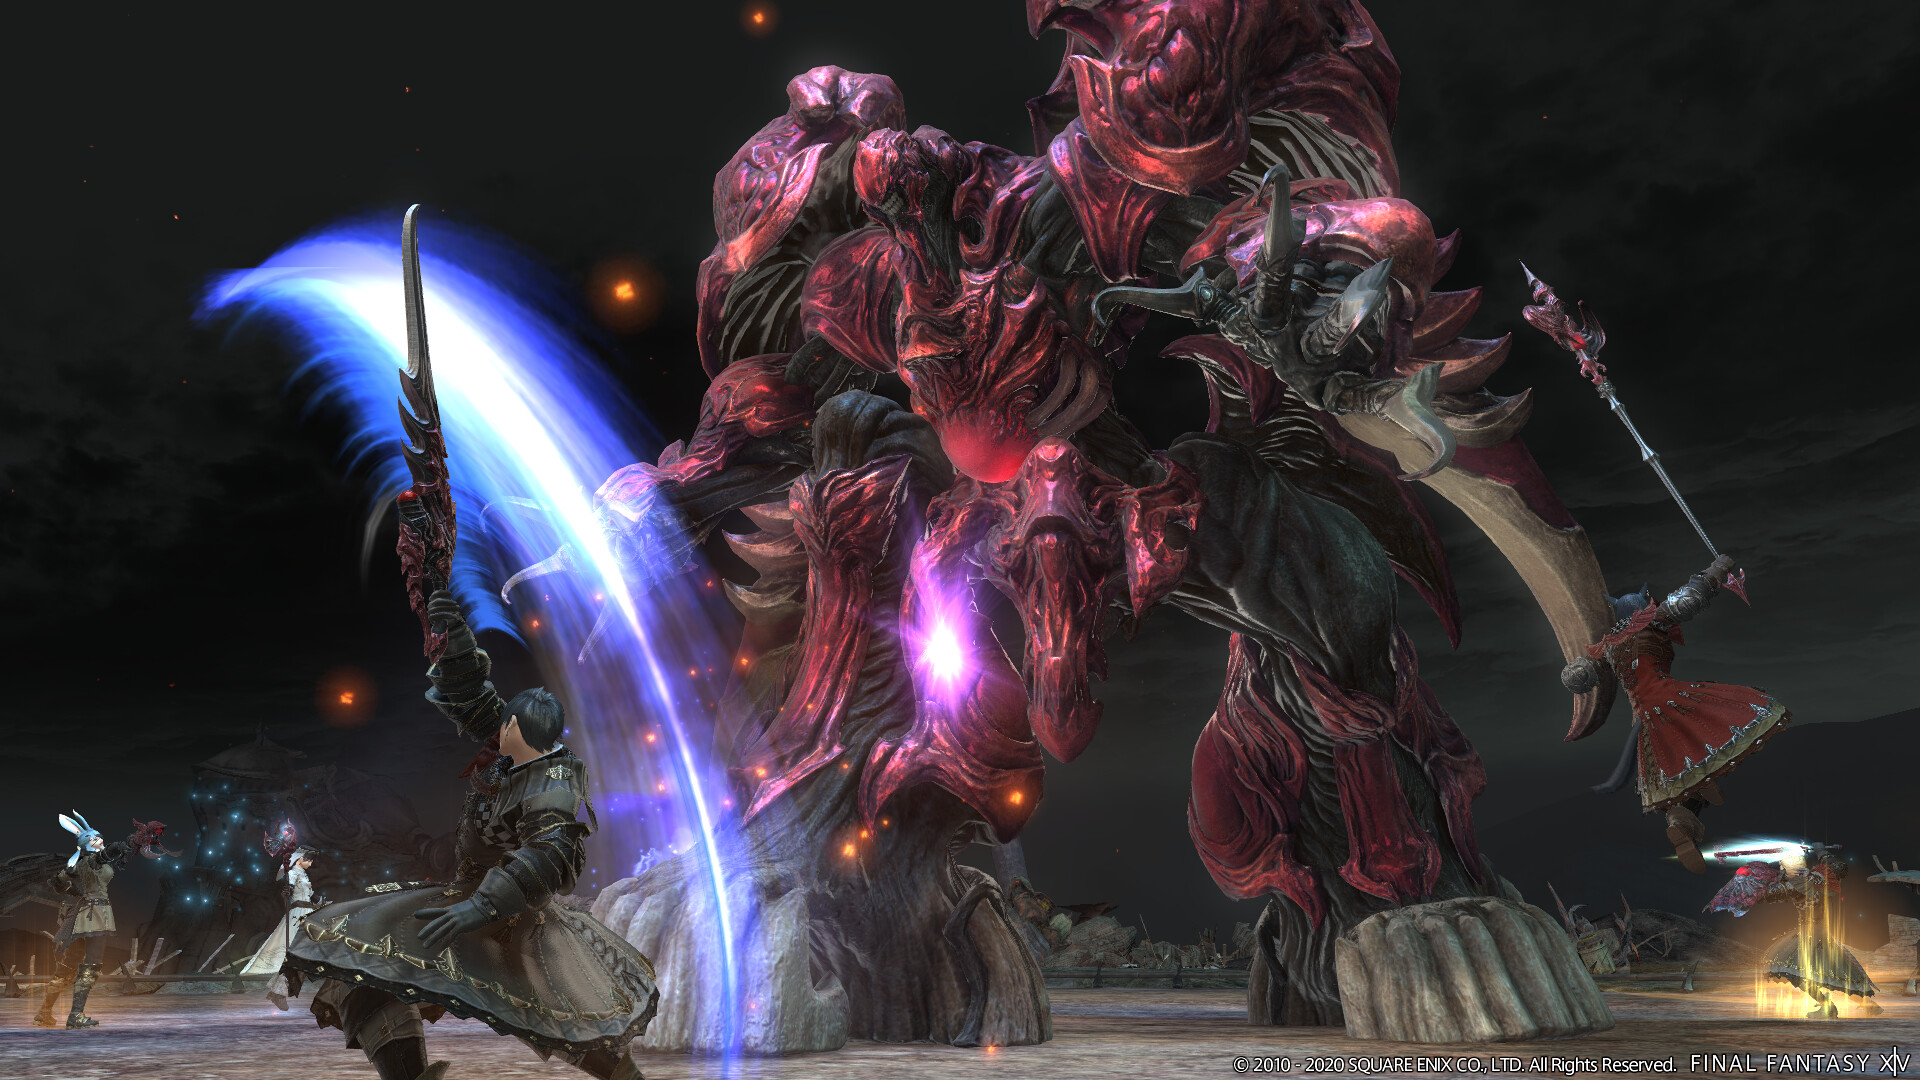 Final Fantasy XIV: Shadowbringers - Ruby Weapon on PS4